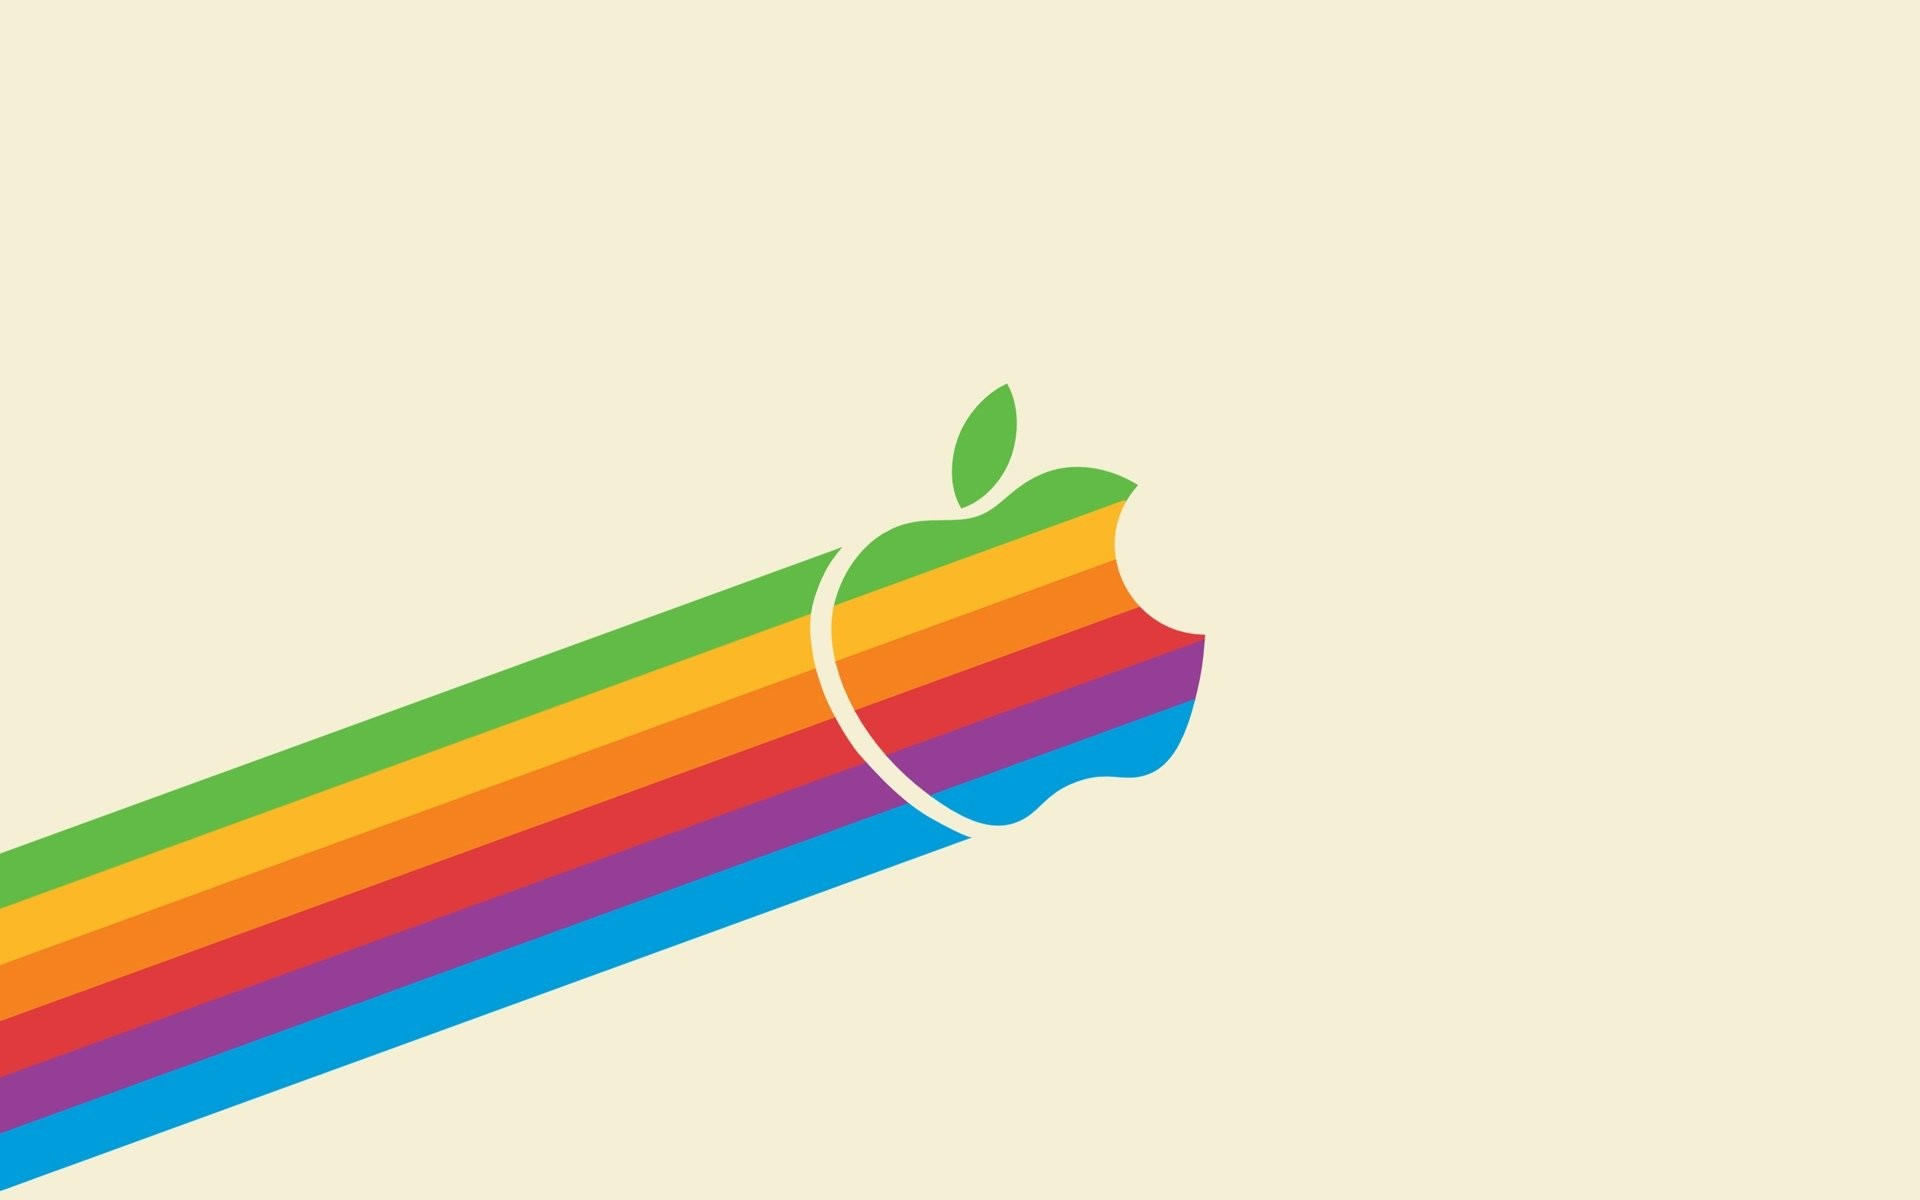 Retro iPhone Wallpapers (76+ images)